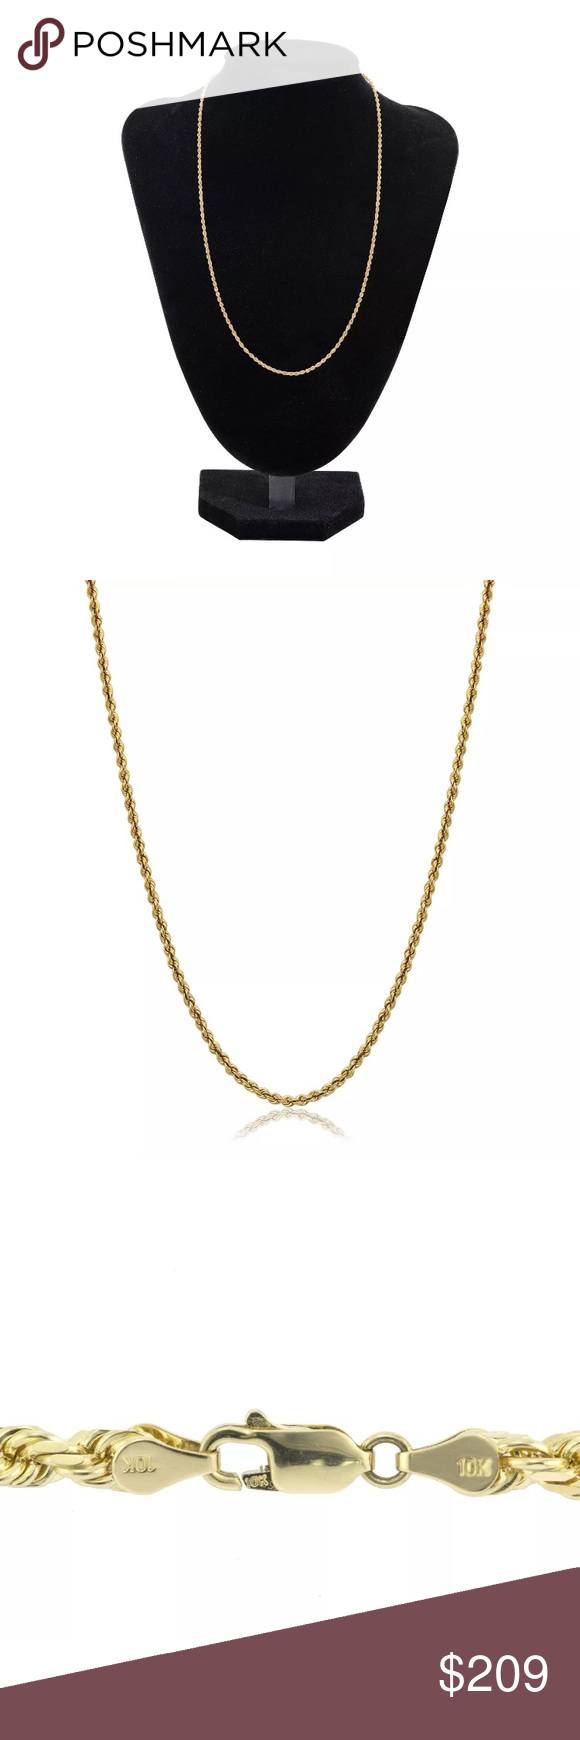 Solid Gold 26 Rope Chain 2mm Brand New Necklace Gold Rope Chains Chains Necklace Necklace